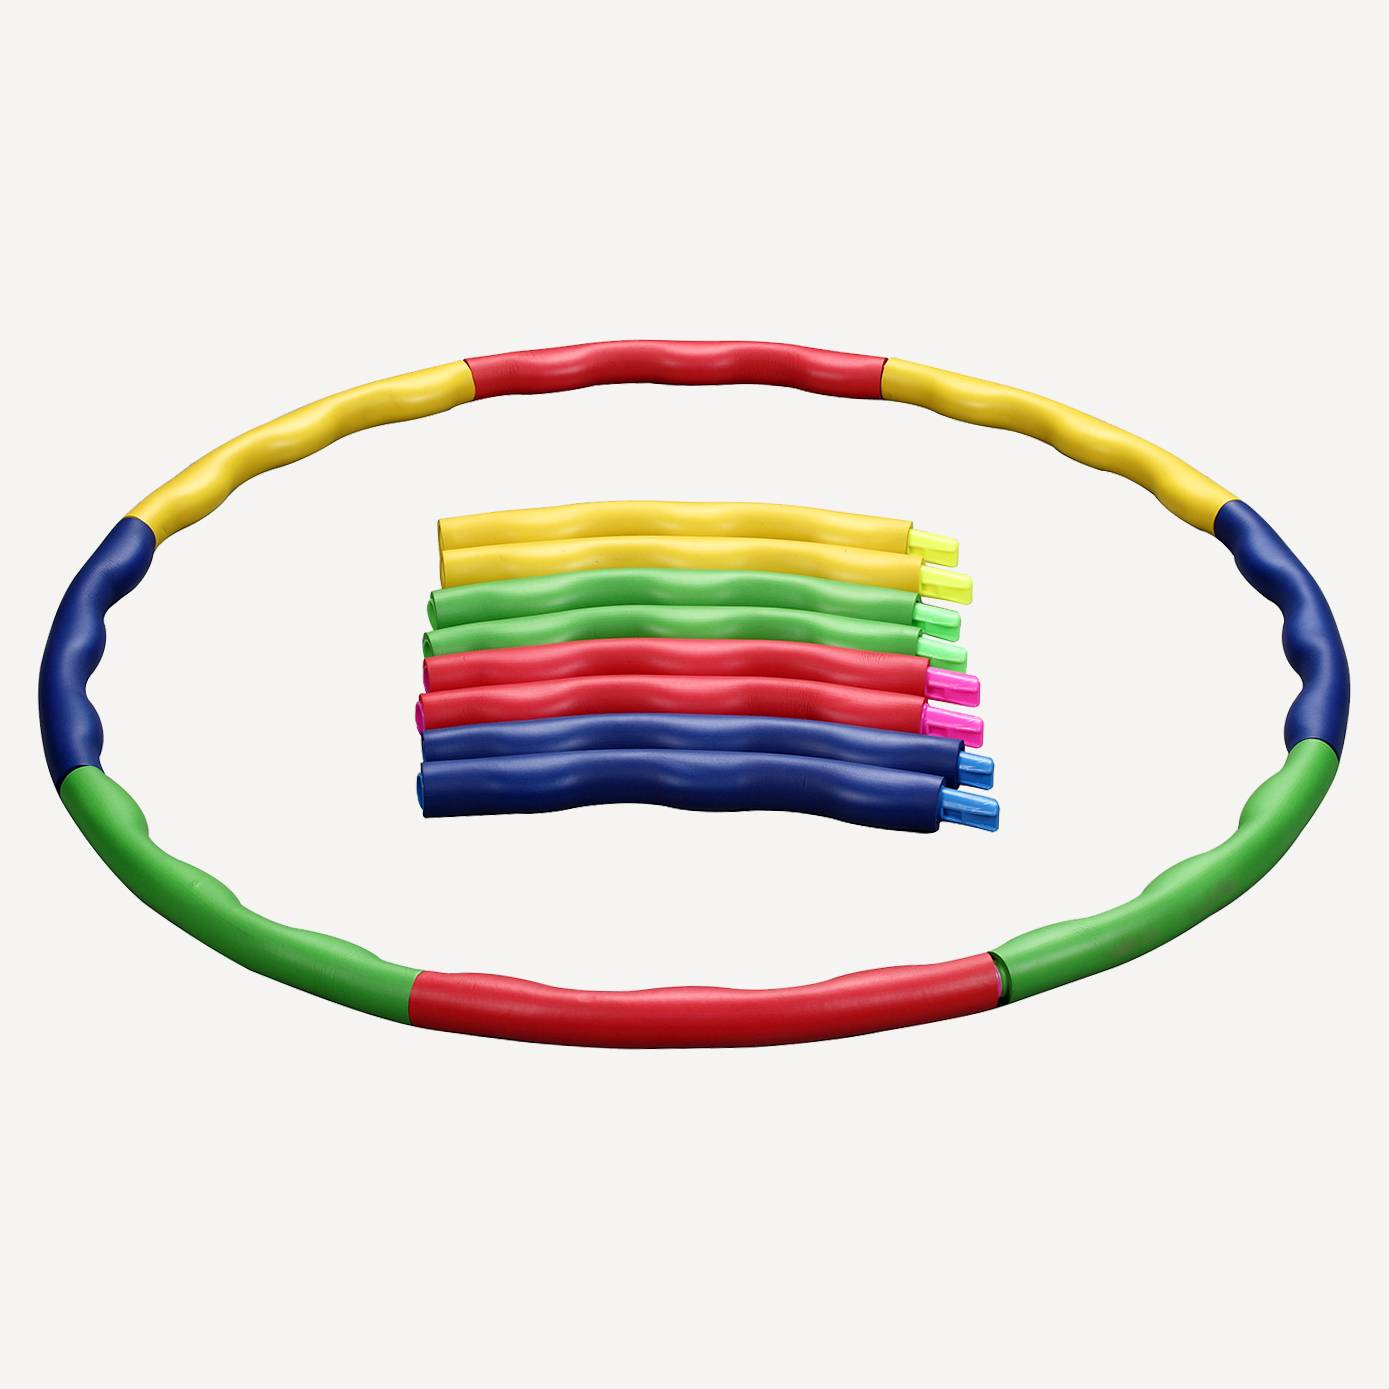 Detachable Adjustable Weight Size Plastic Kid Hoola Hoop, Suitable as Toy Gifts WH-011 Featured Image